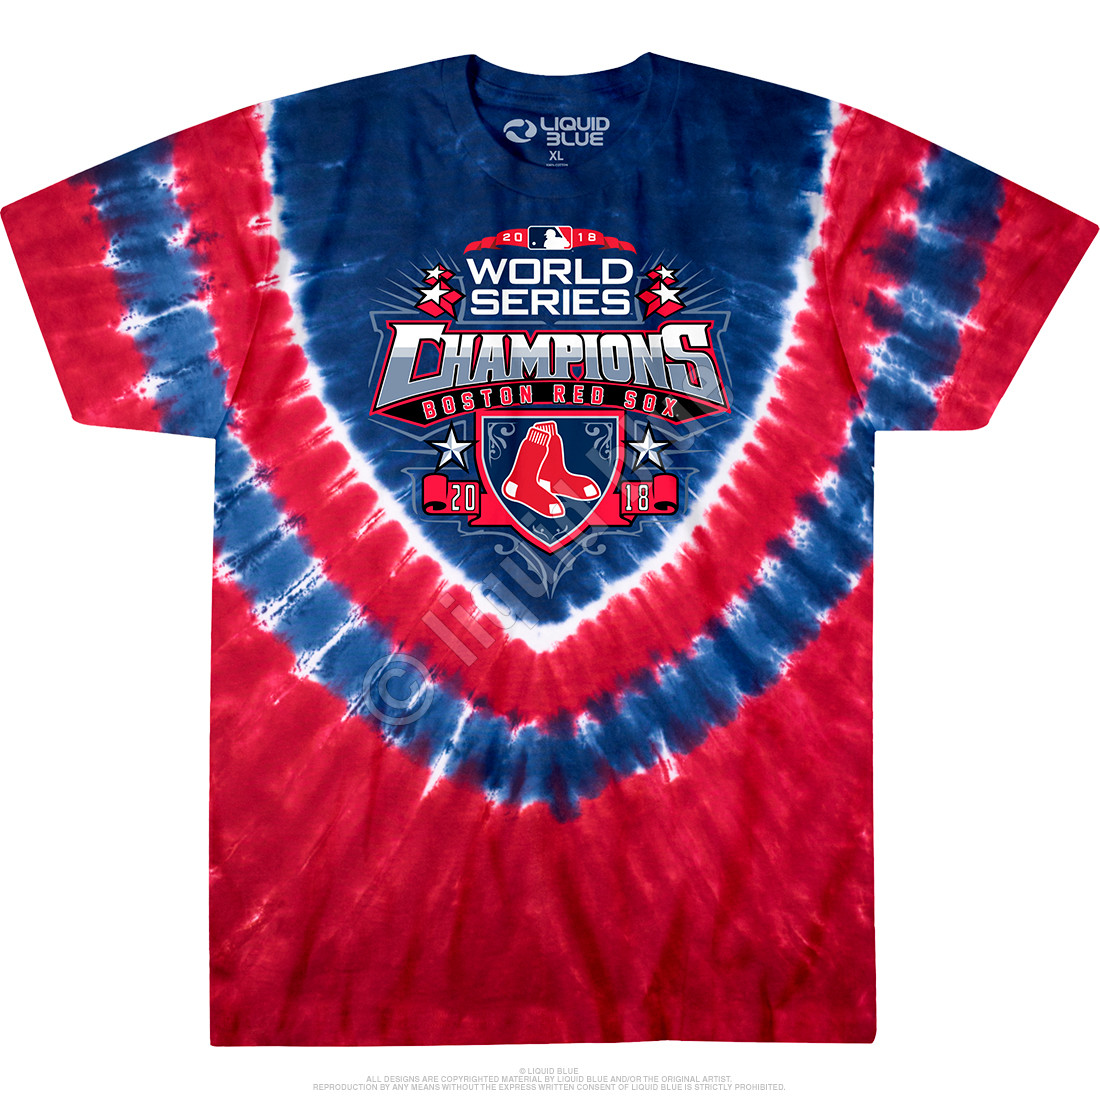 sale retailer 0021b 0185d Boston Red Sox World Series Champions Shield Tie-Dye T-Shirt Clearance 50%  OFF